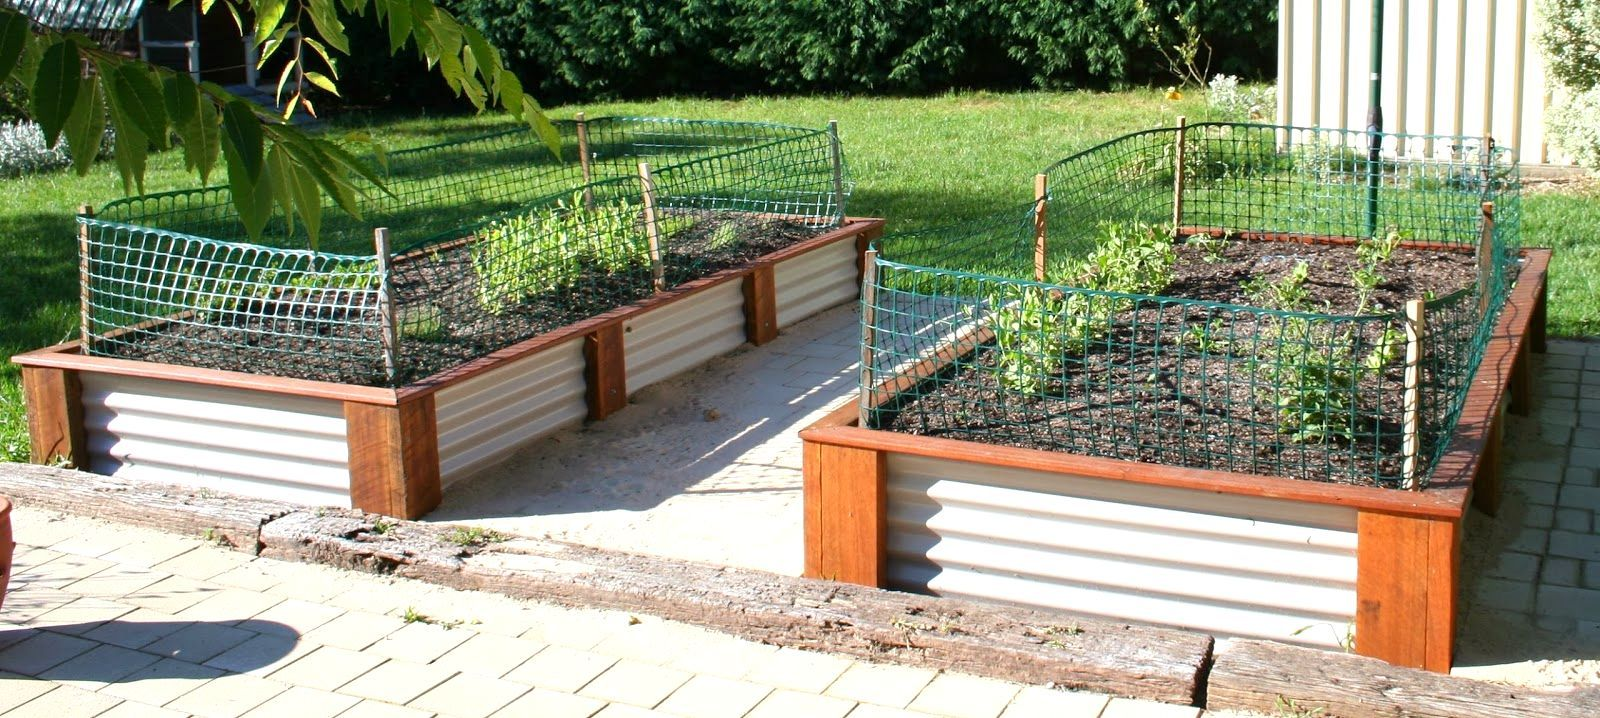 Raised Garden Bed Kits Nz Things To Share Blog November